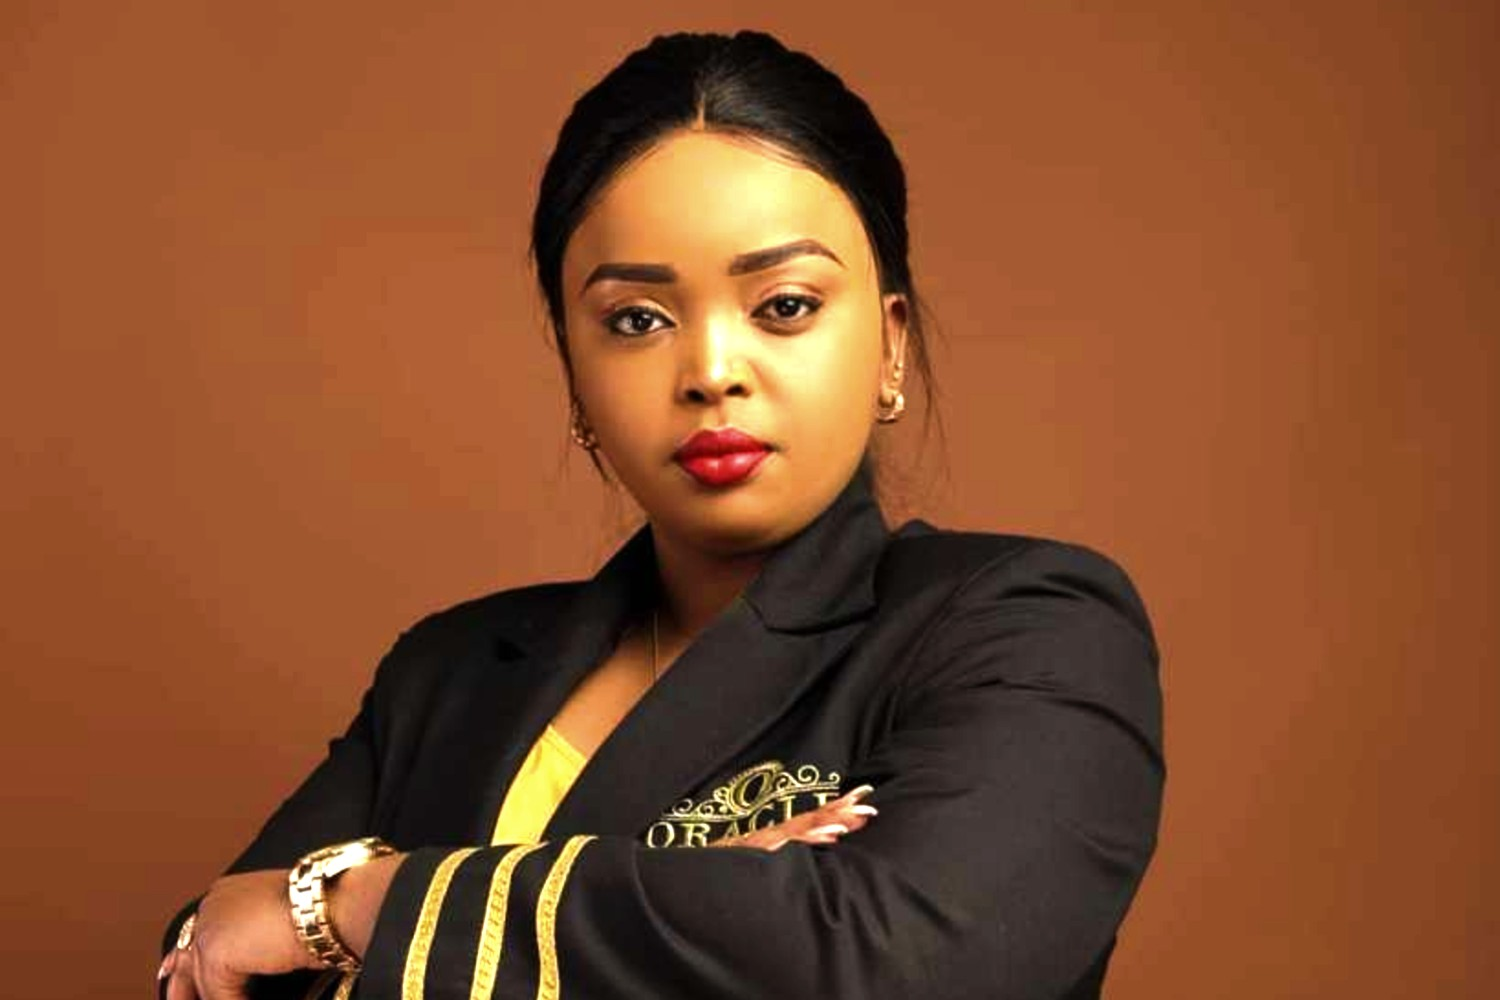 Reverend Lucy Natasha Biography, Age, Husband, Career, Facts